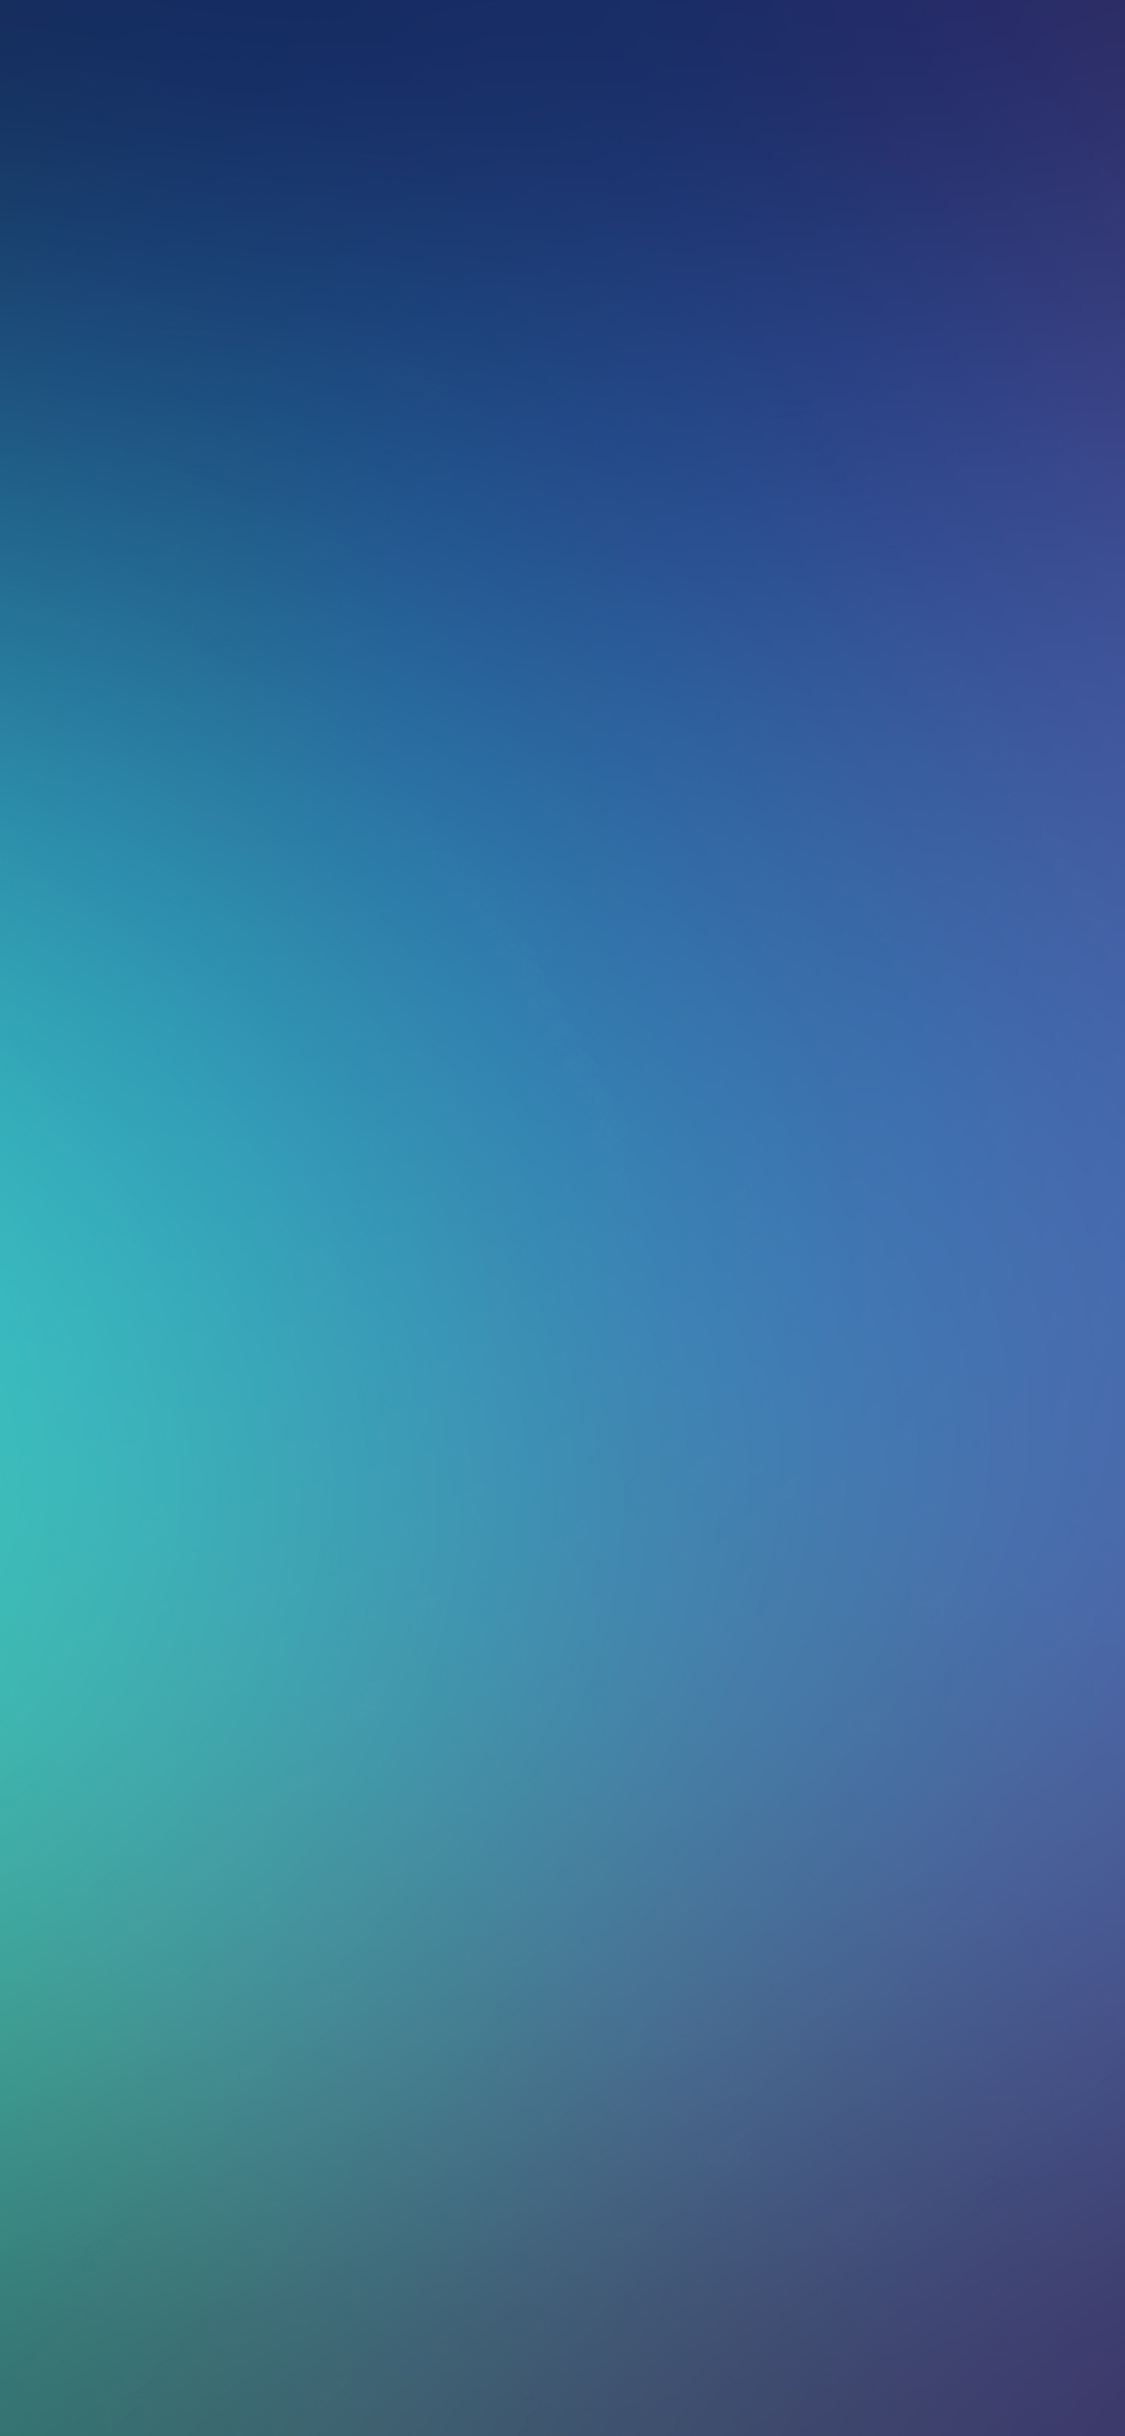 iPhoneXpapers.com-Apple-iPhone-wallpaper-sd69-blue-windows-green-gradation-blur